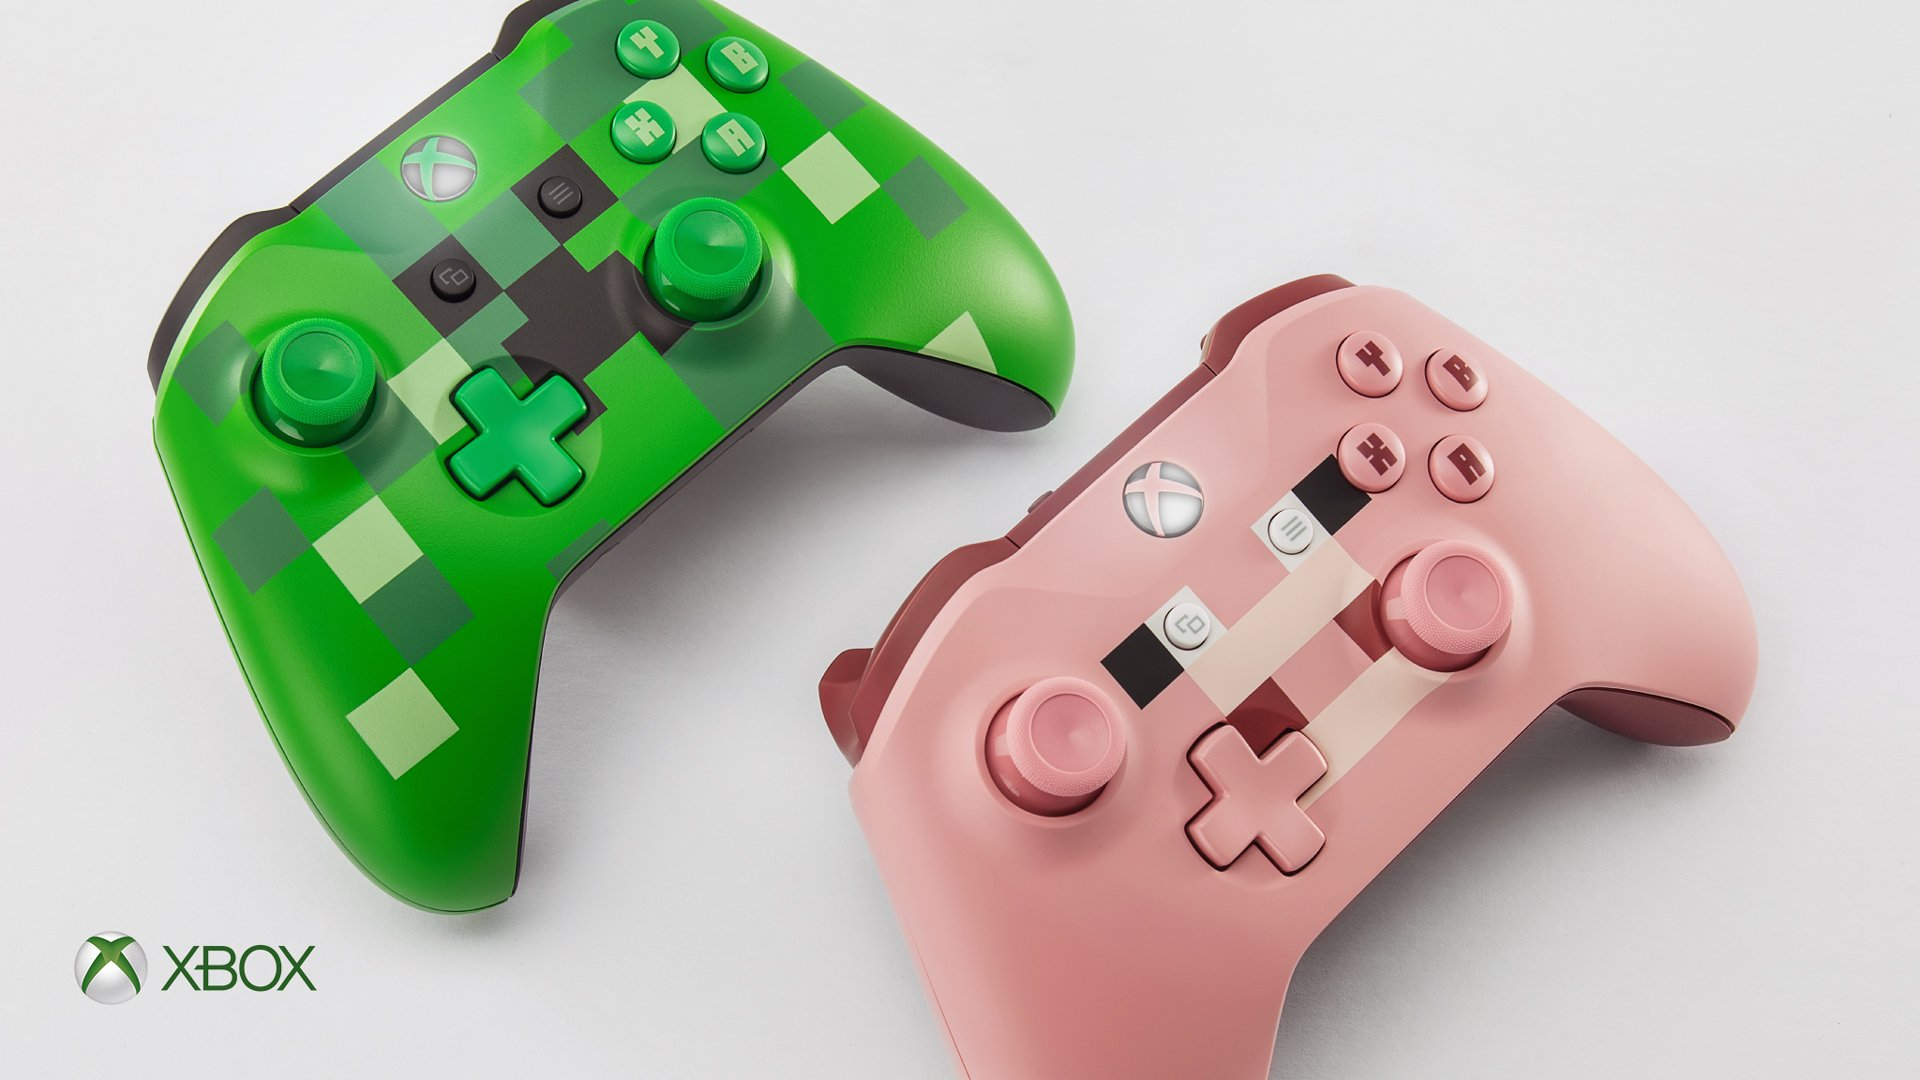 Essential tools for the serious crafter. Pre-order your #Minecraft [E10+] controllers now: https://t.co/fmHje2x9s6 https://t.co/kFpiSbZgOl